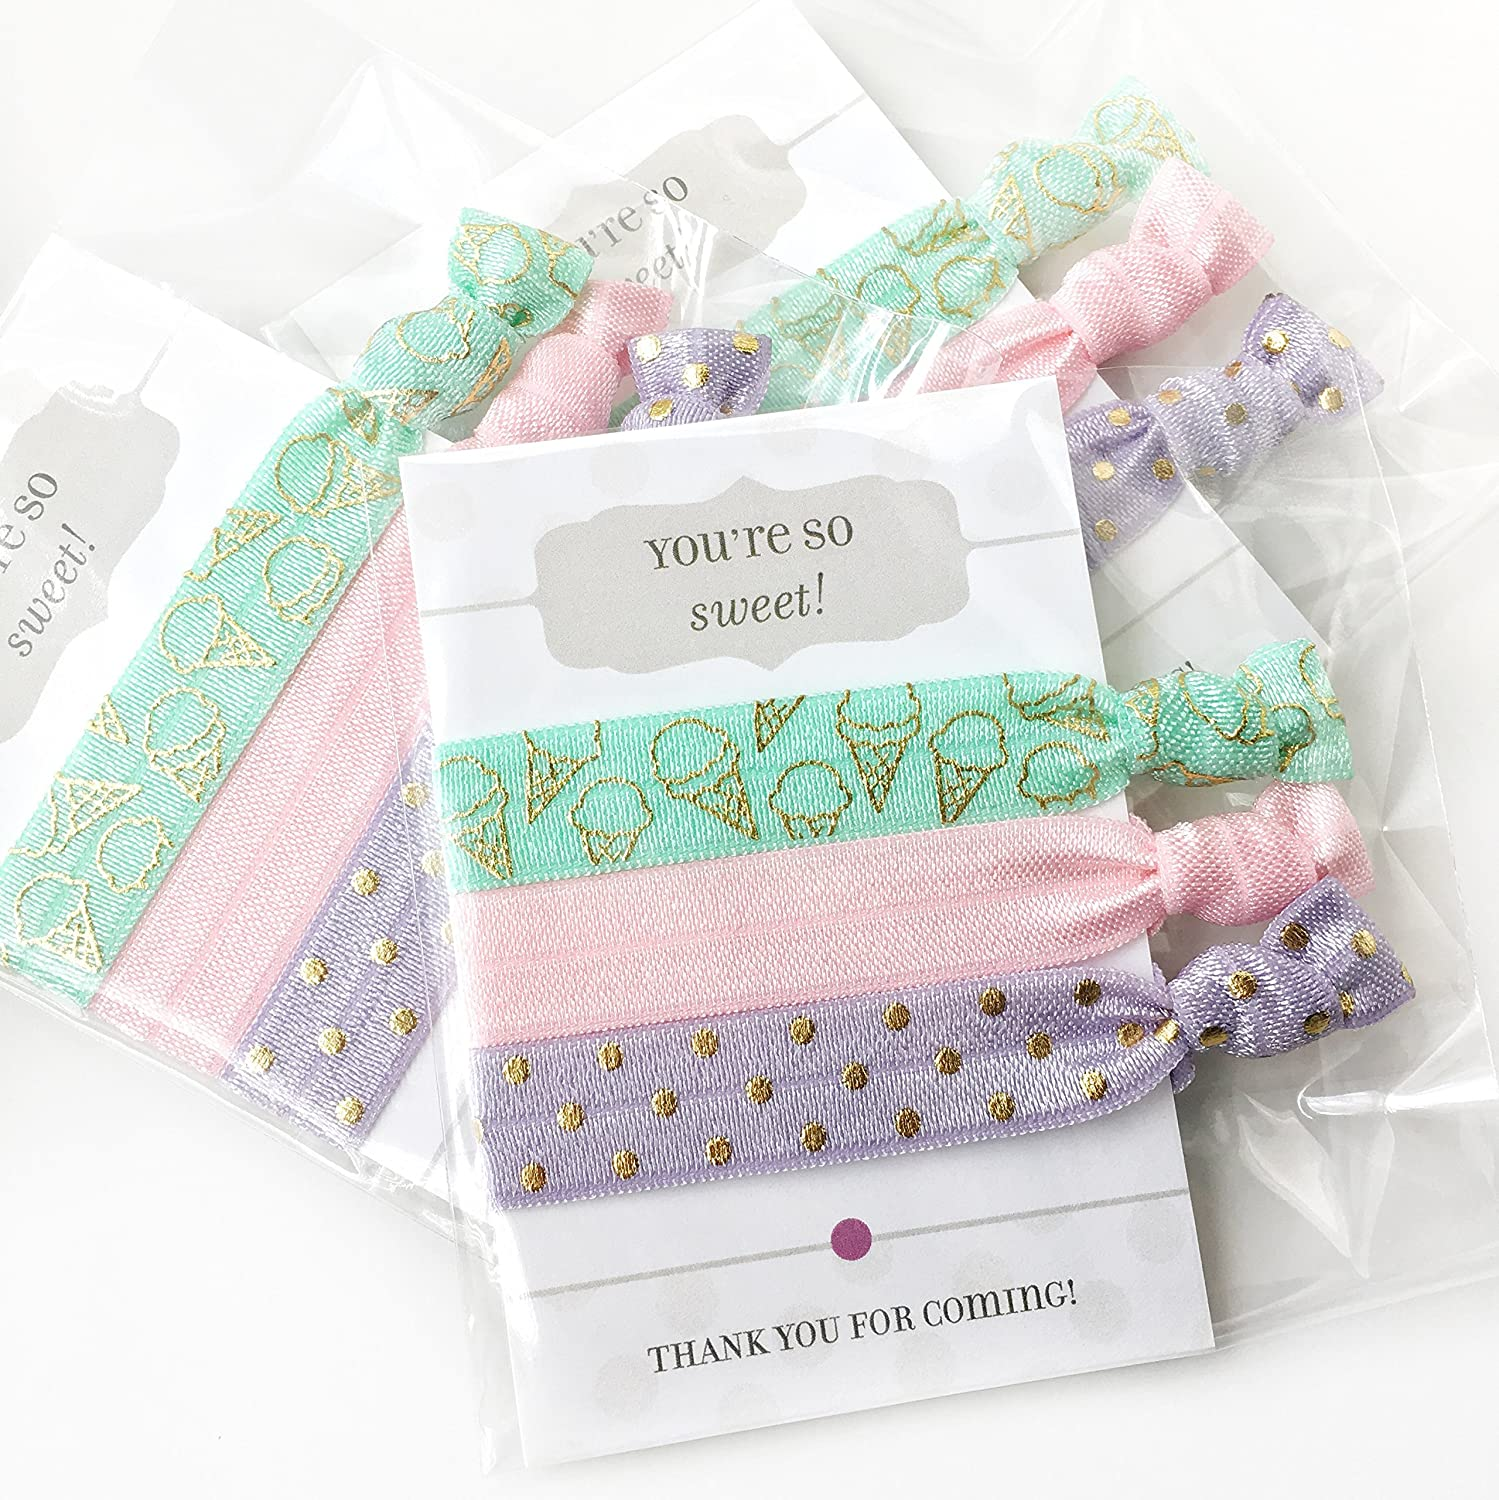 Ice Cream Party Favours - Hair Ties (5 Pack)